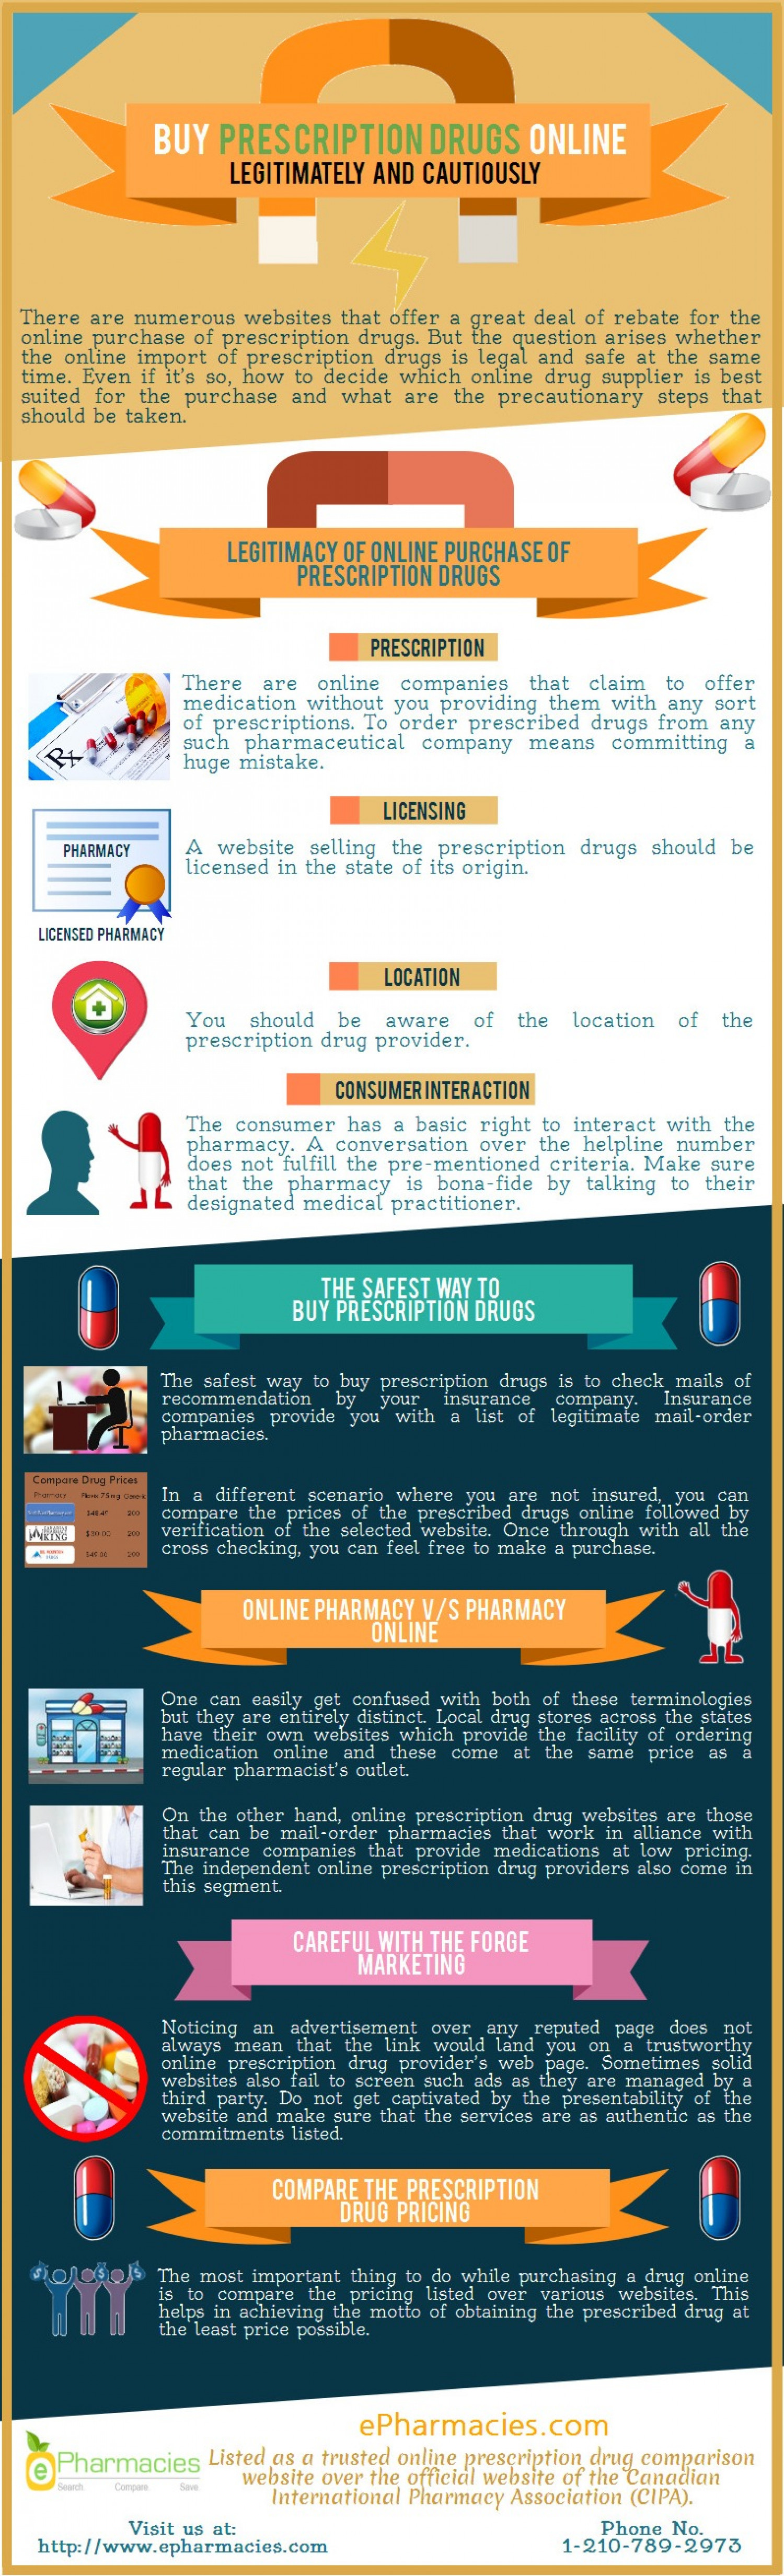 Buy Prescription Drugs Online - Legitimately and Cautiously Infographic